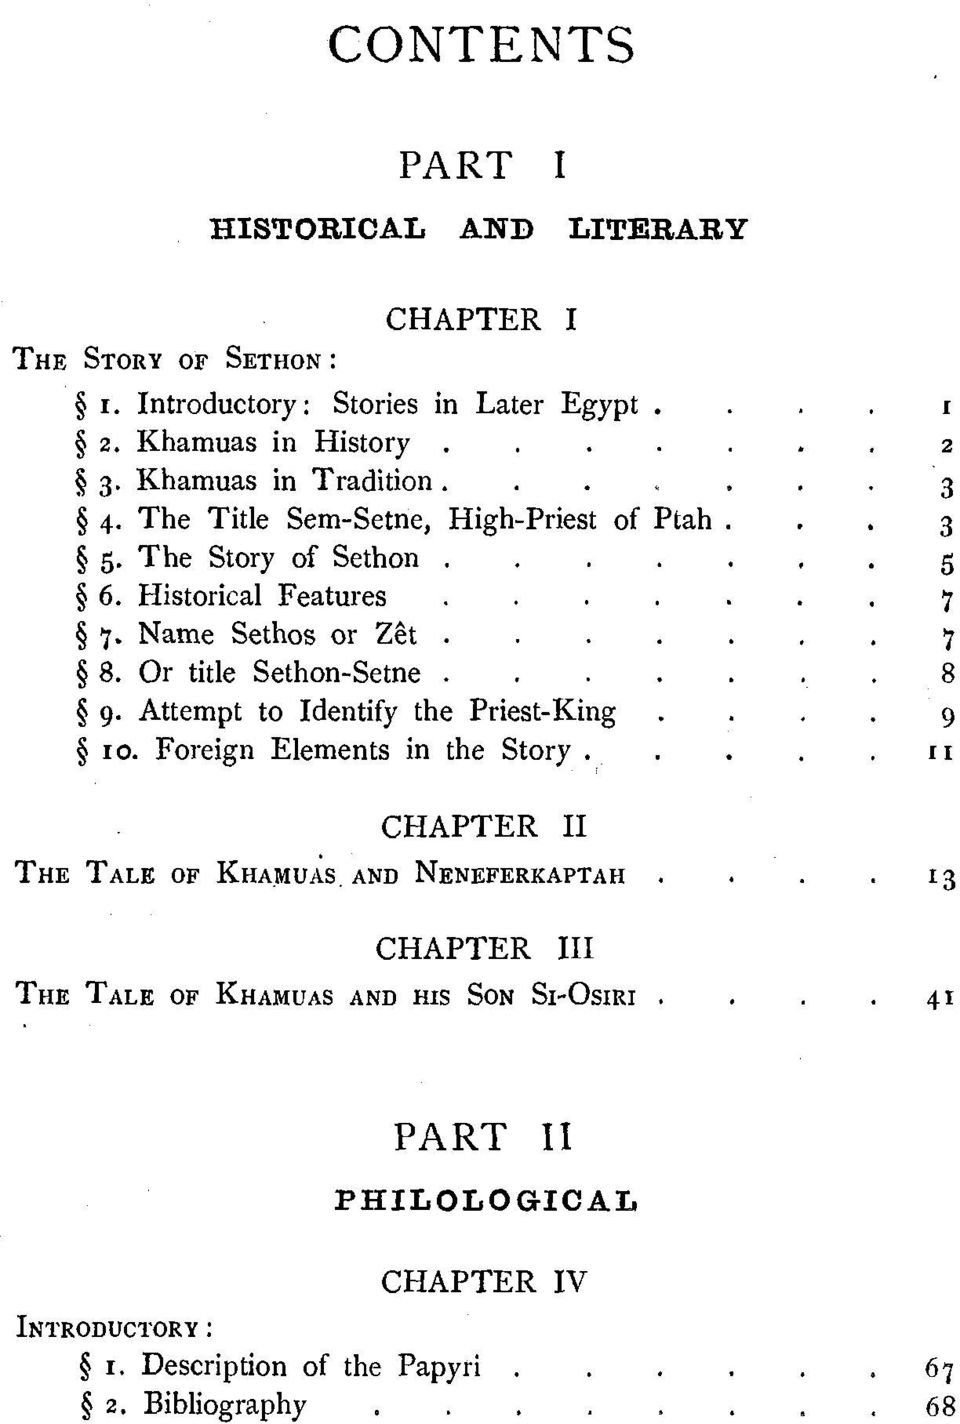 7 5 8. Or title Sethon-Setne.. 8 5 9. Attempt to Identify the Priest-King. 9 10. Foreign Elements in the Story... II CHAPTER I1 THE TALE OF KHAMU~S.